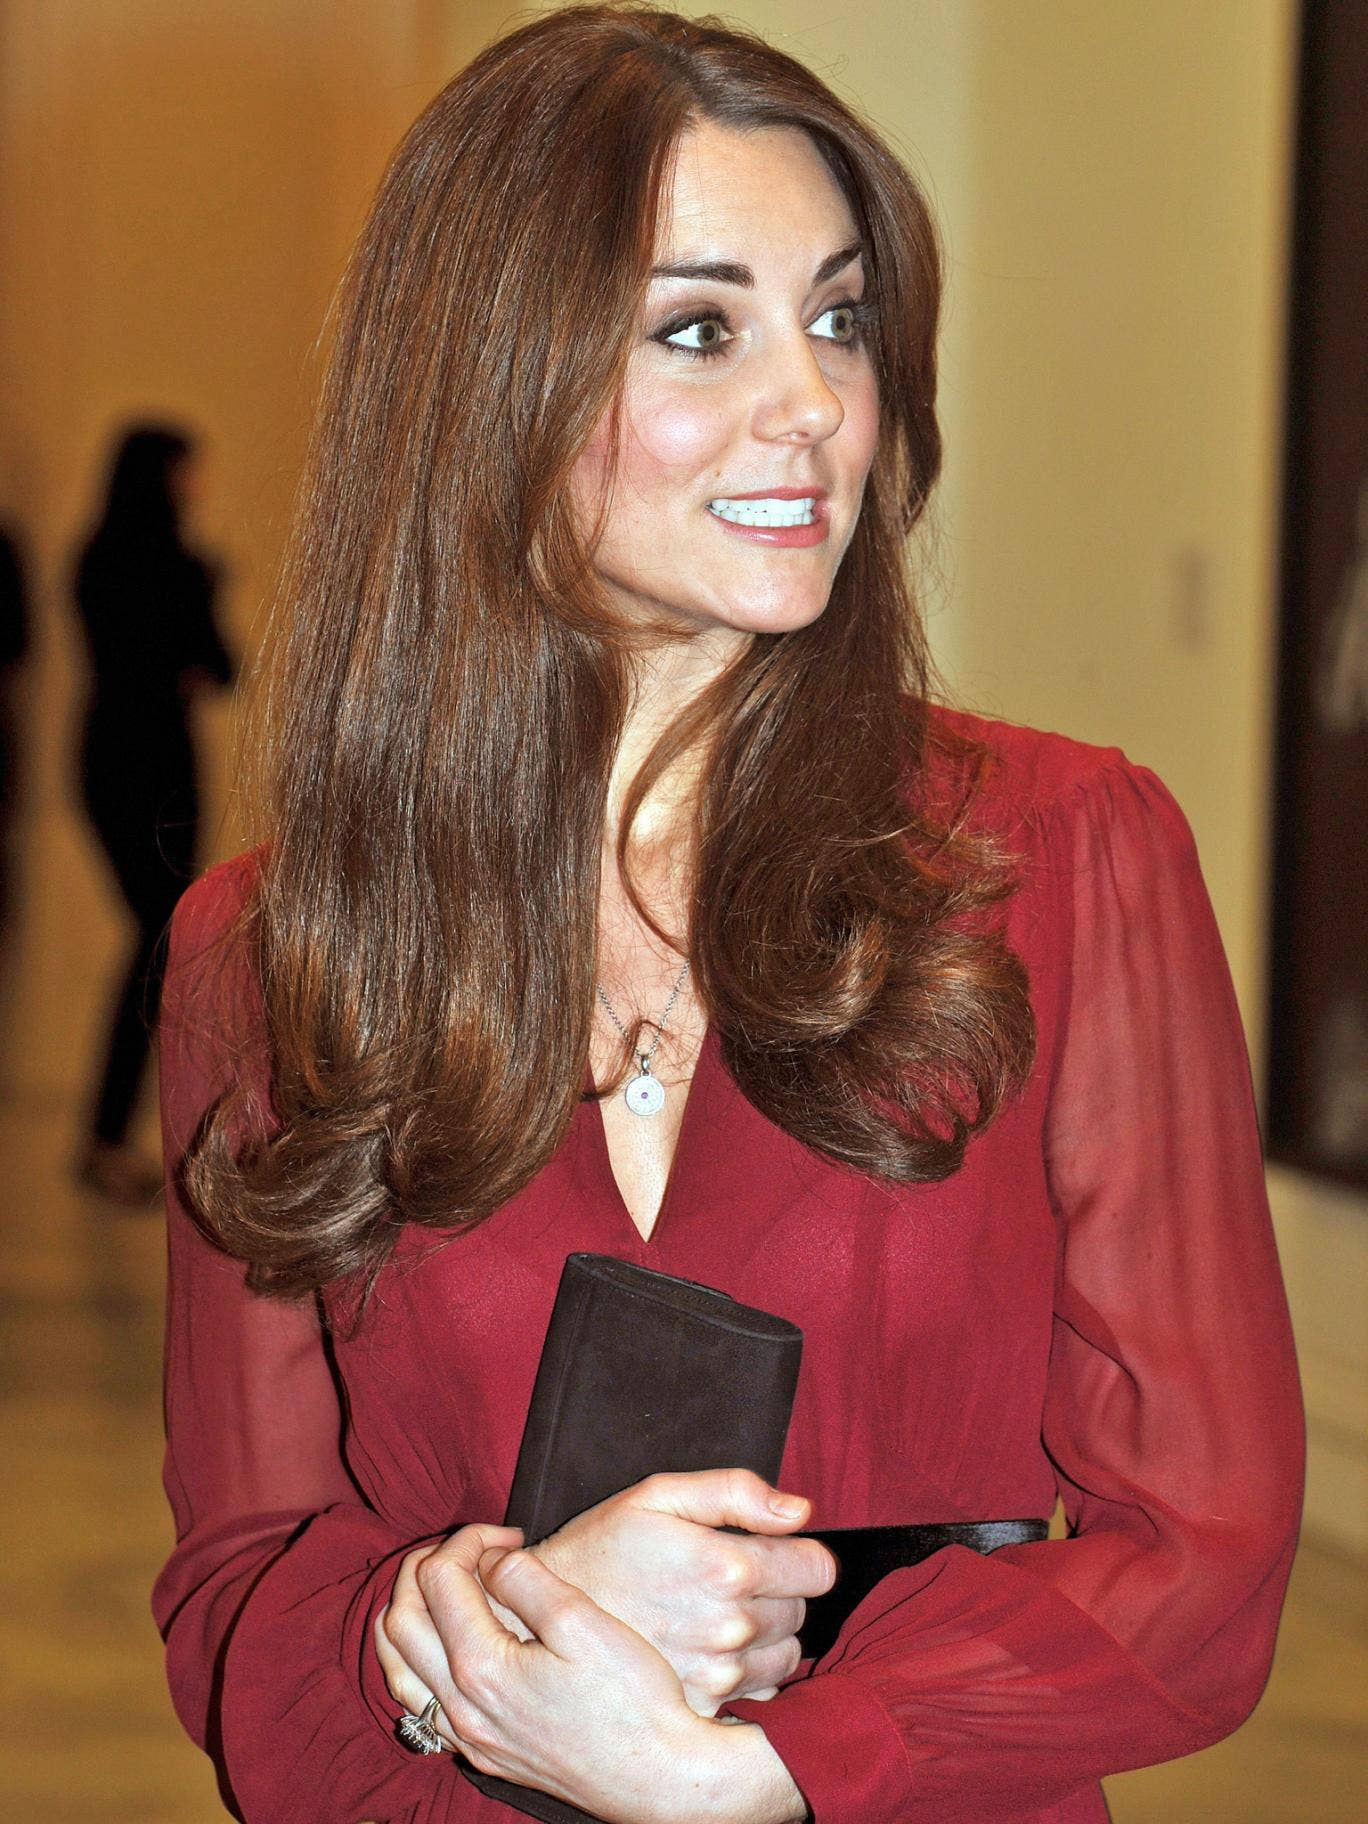 The Duchess of Cambridge is currently five months pregnant